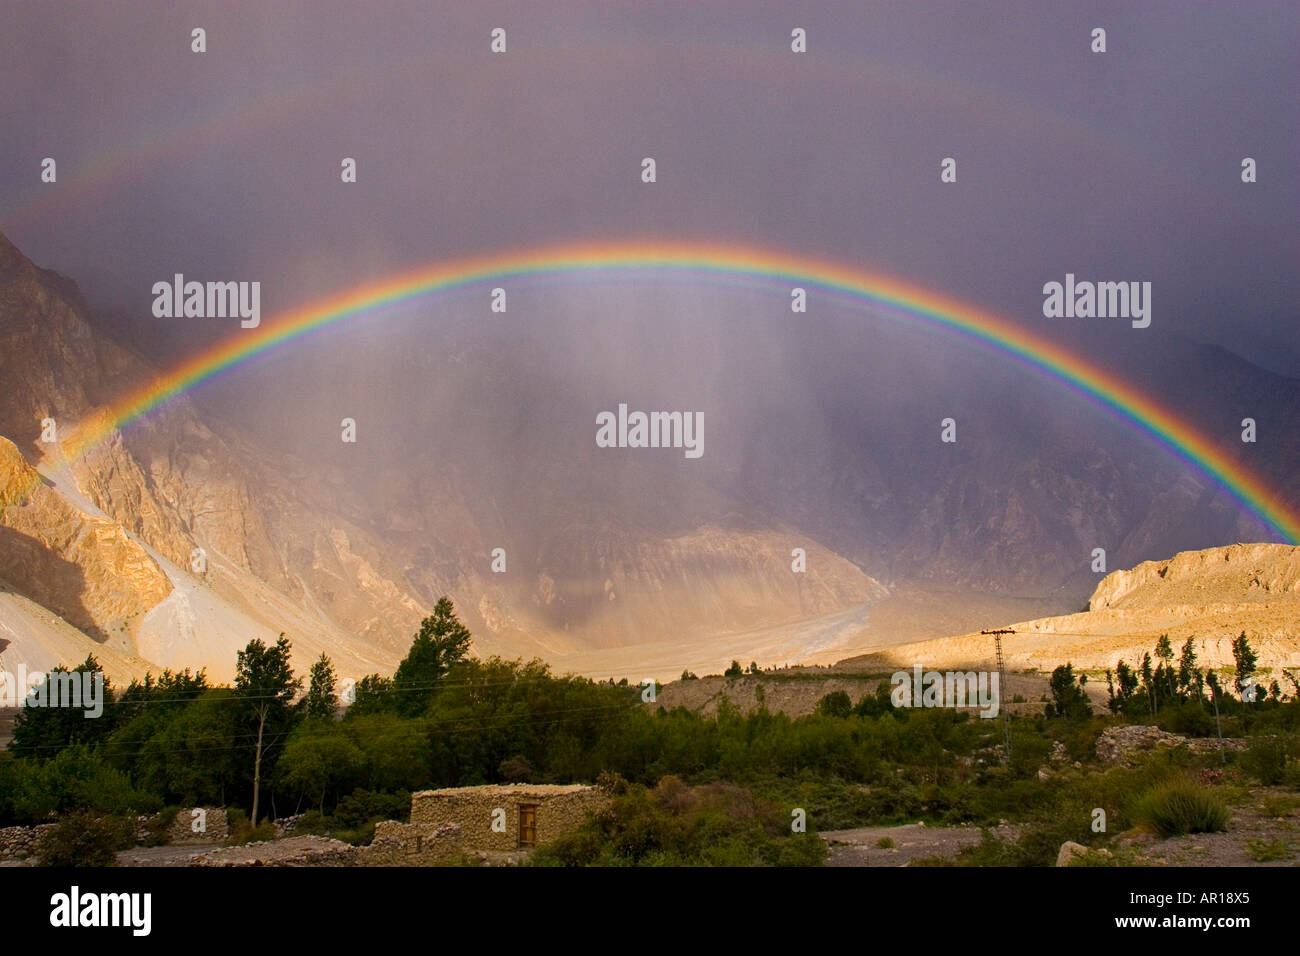 A stunning rainbow after a rainstorm over the village and the peaks of Passu Pakistan - Stock Image